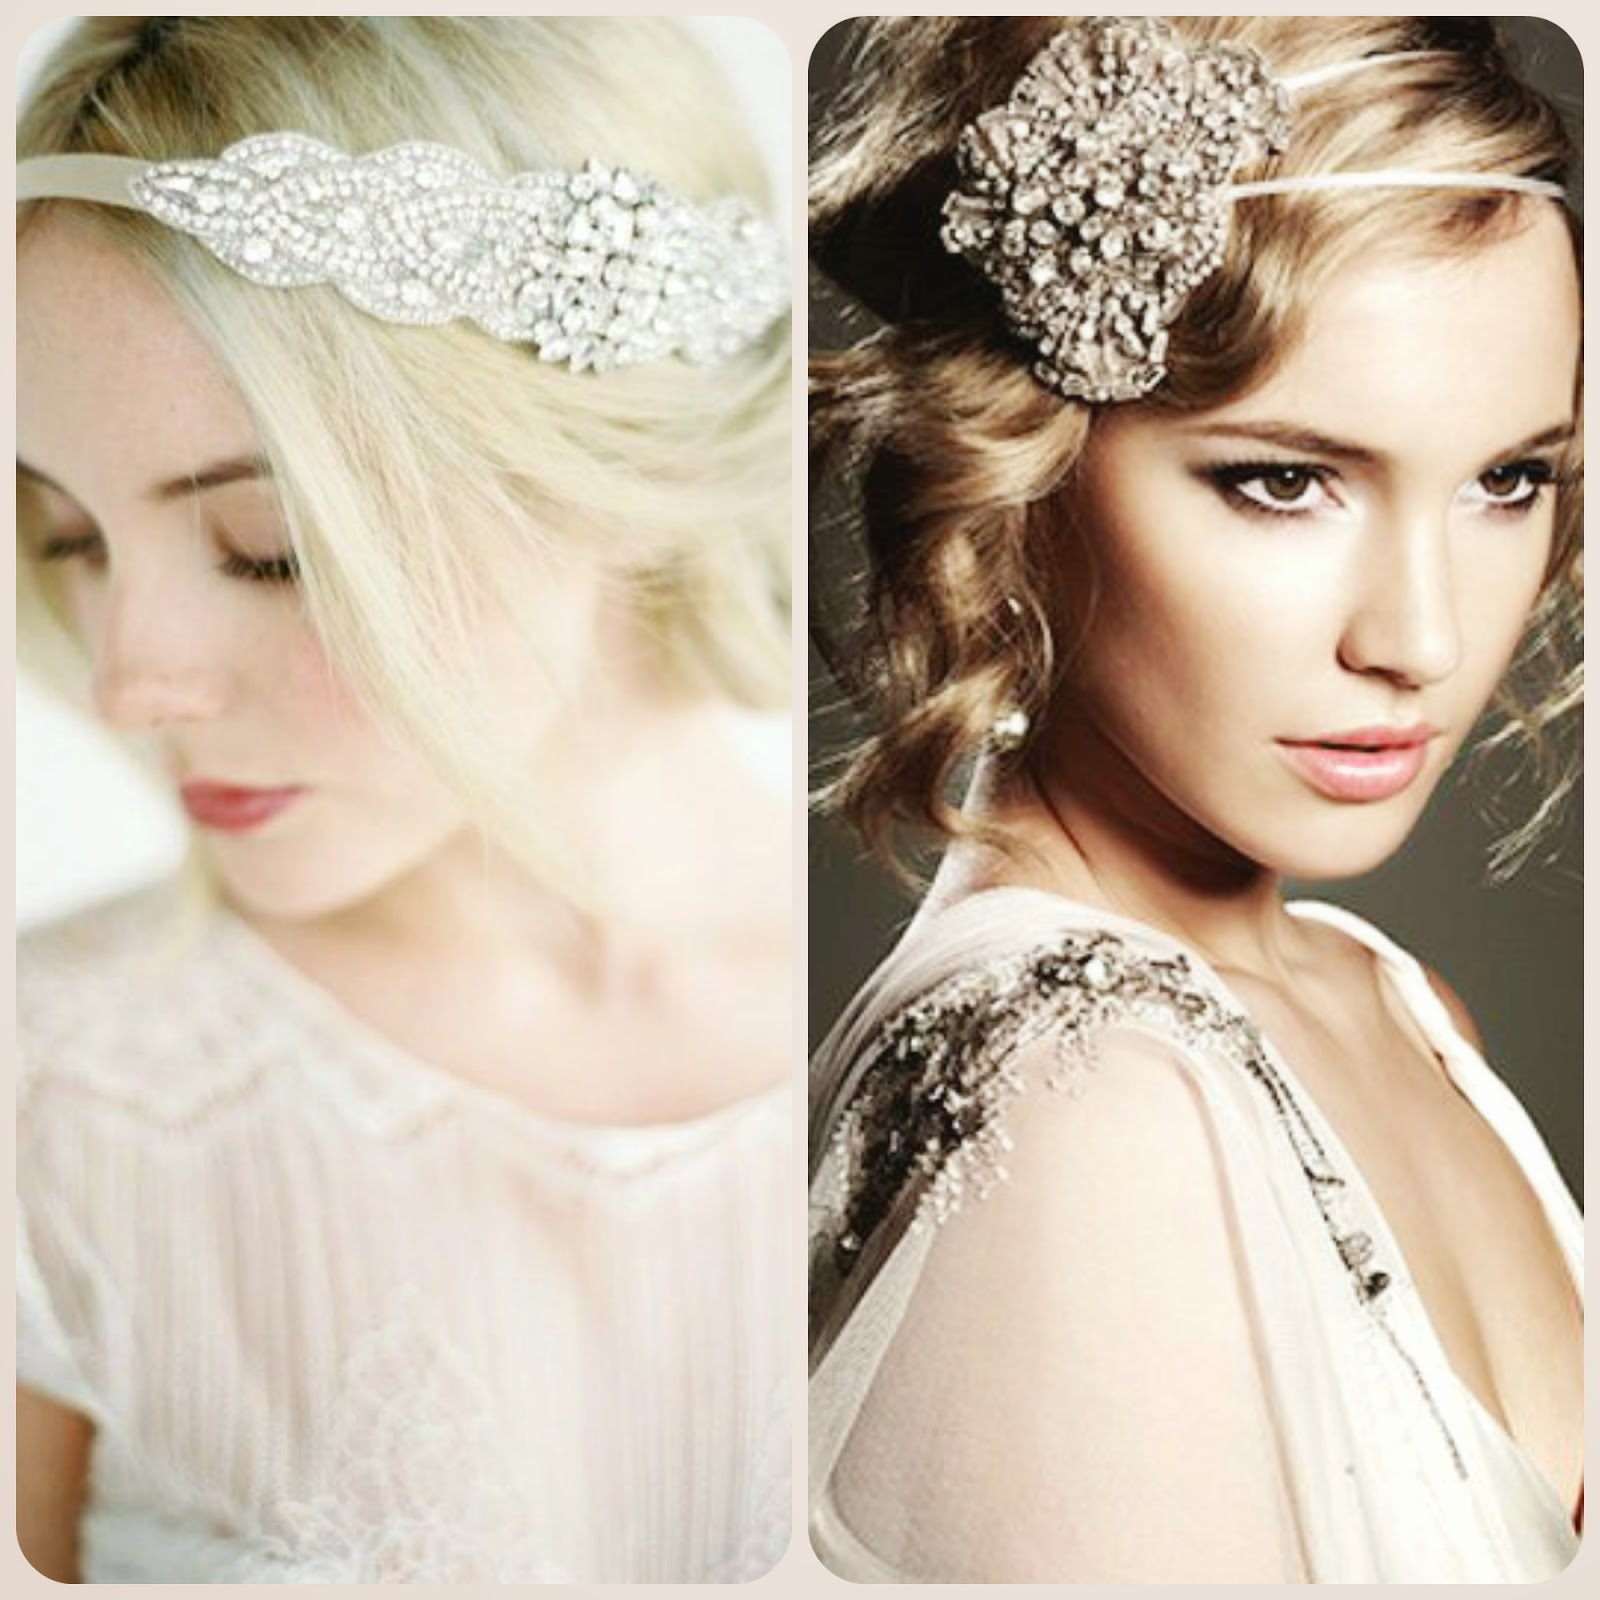 bridal hairpieces hair pieces for wedding Maybe a veil isn t in your ideal wedding look but you still want a little glitz and glam in your hair check out these gorgeous headbands to switch up your